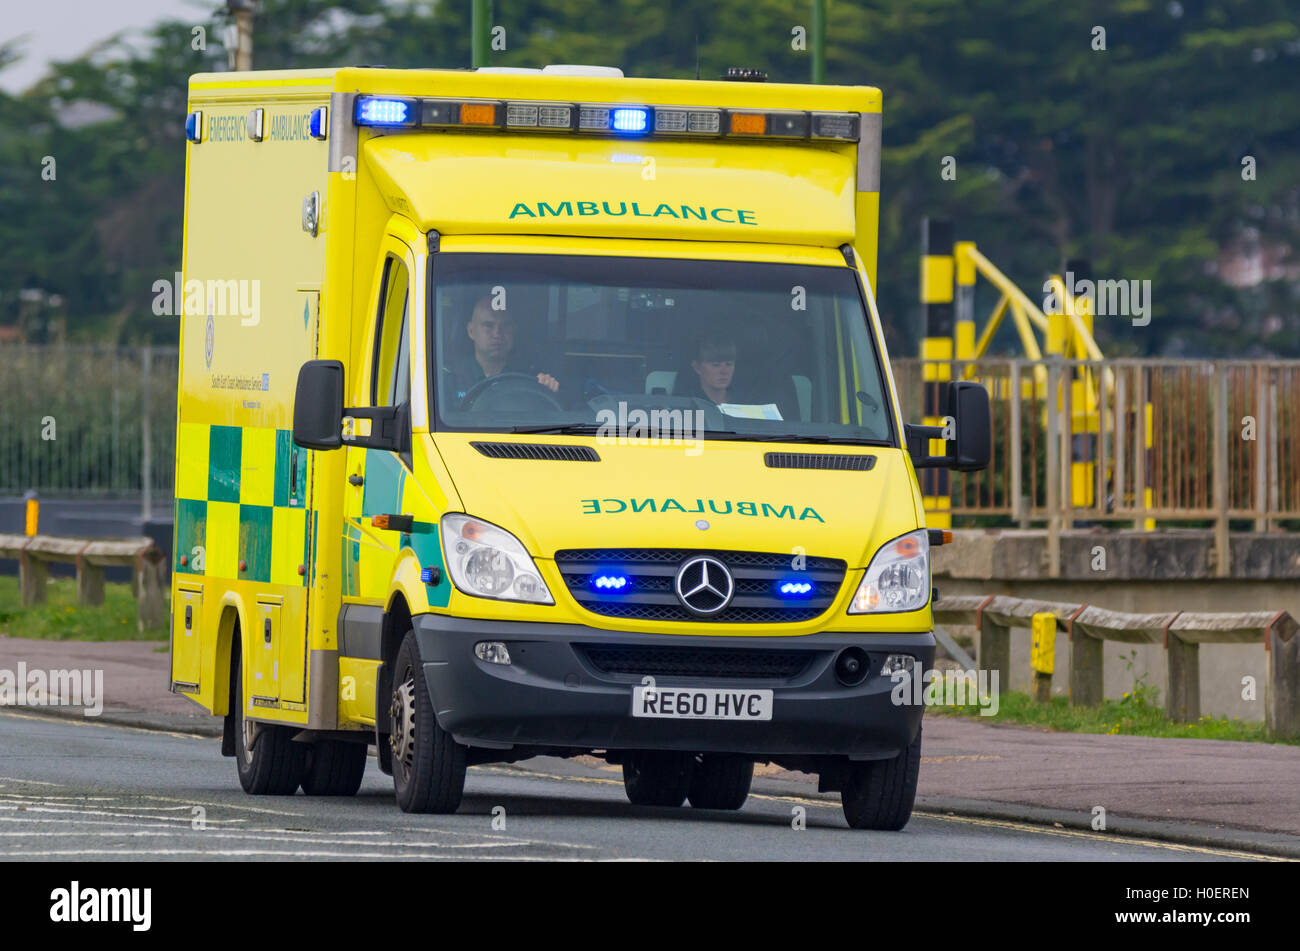 Ambulance with blue lights flashing on a road in the UK. NHS ambulance UK. Ambulance blue lights. Ambulance service. - Stock Image